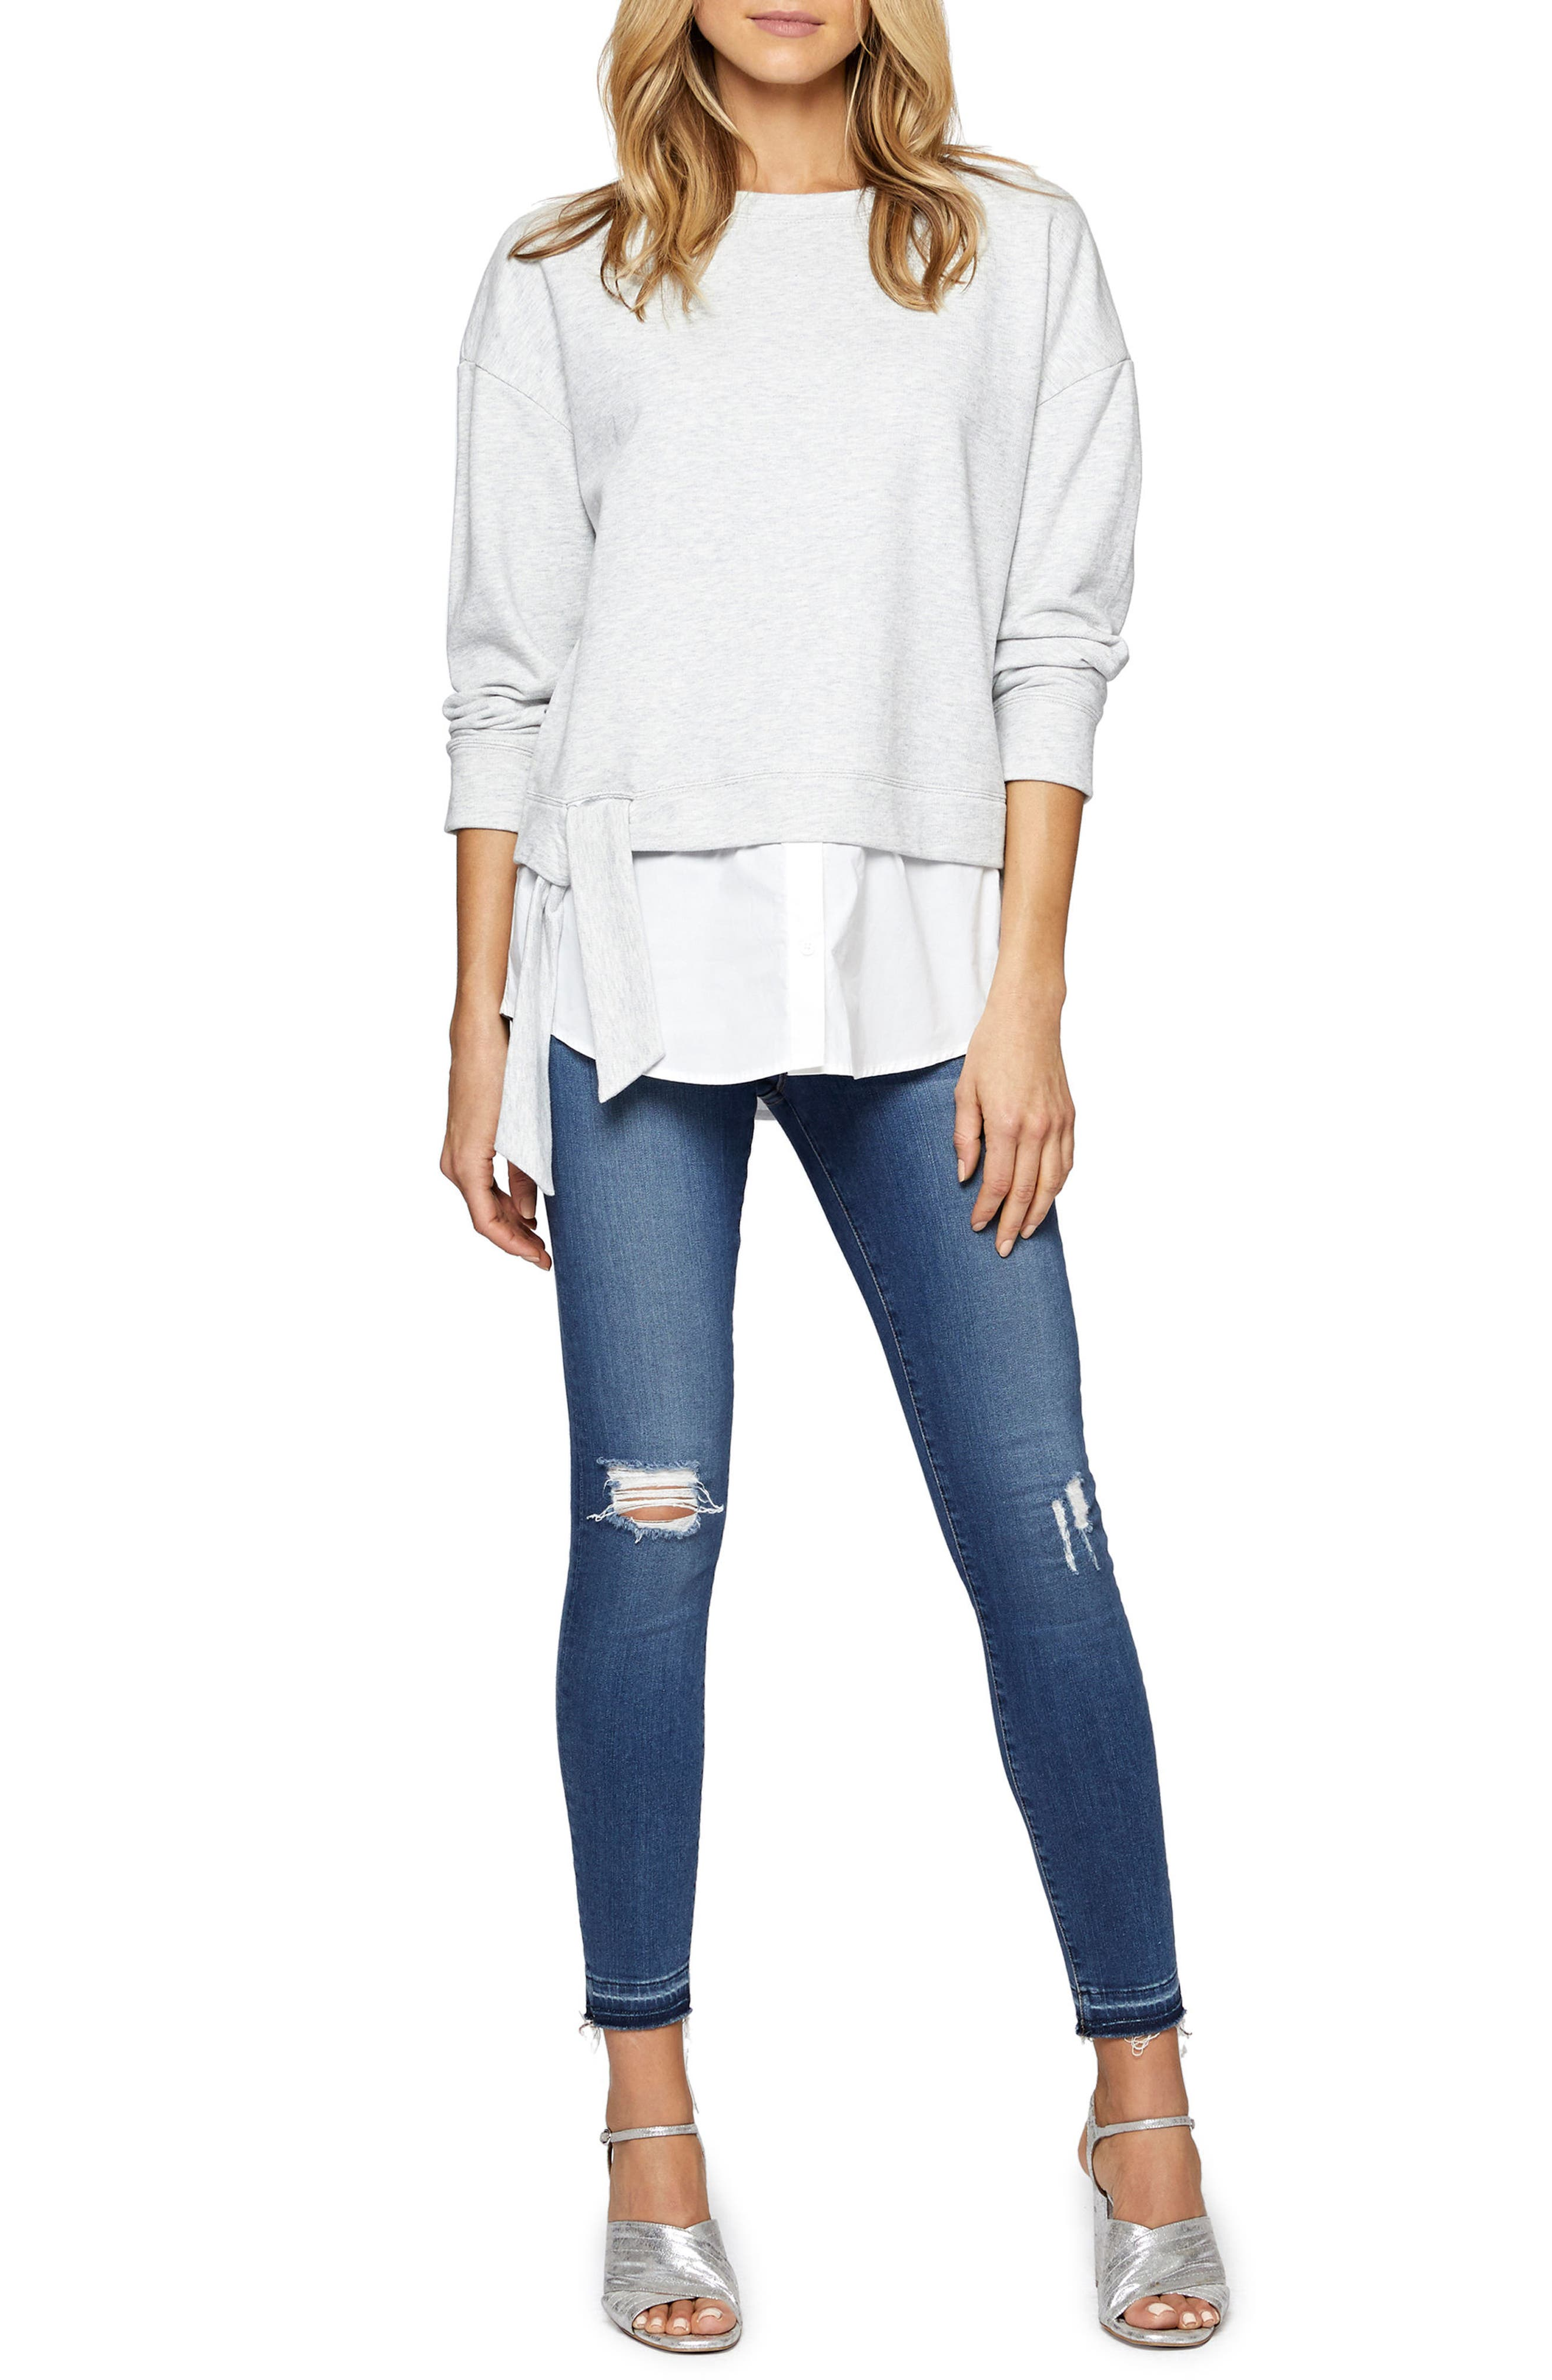 Ally Layered Look Sweatshirt,                             Alternate thumbnail 3, color,                             064